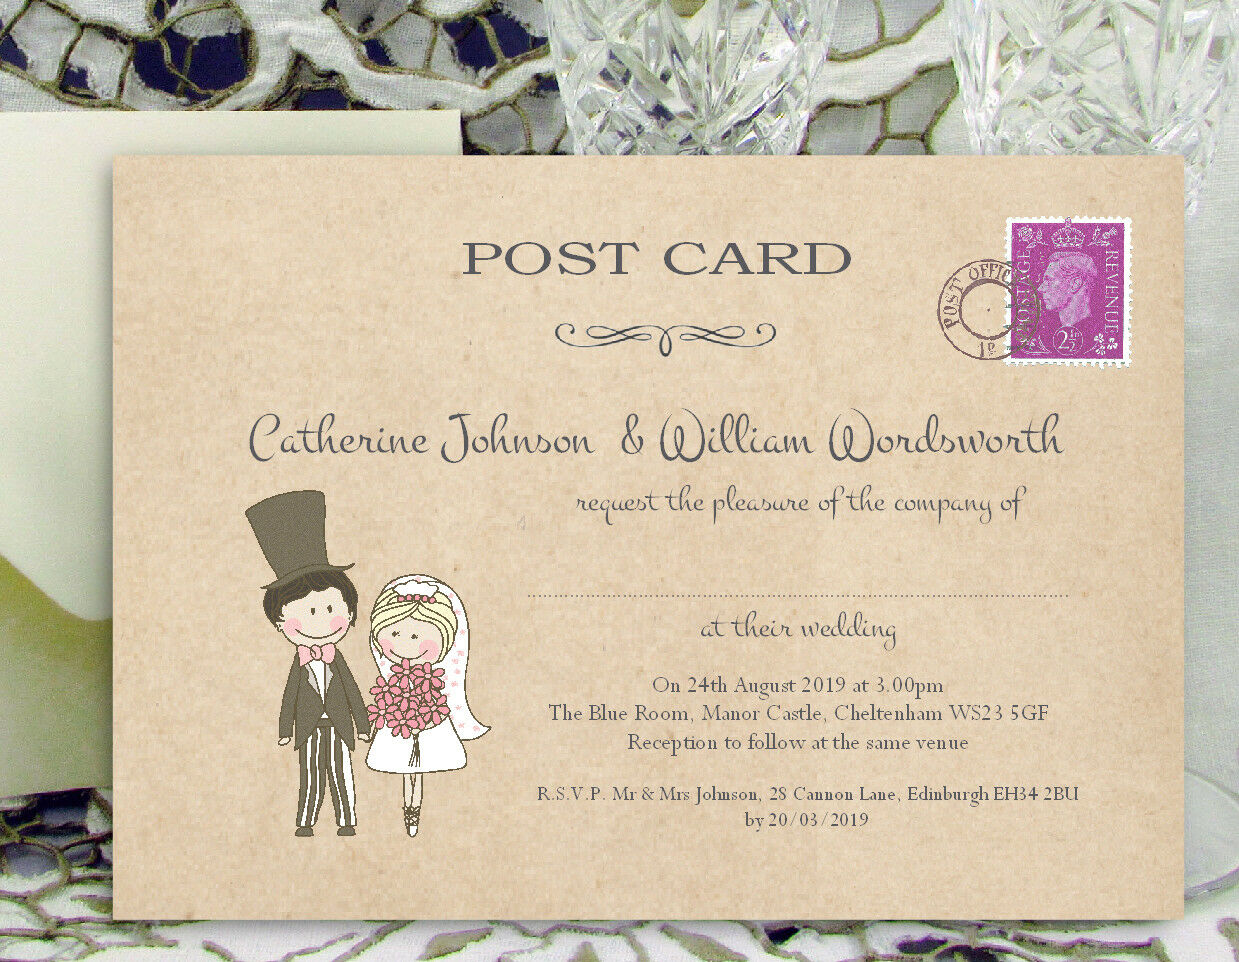 PERSONALISED WEDDING INVITATIONS 10x15cm Cute Couple Postcard Invite & Envelopes